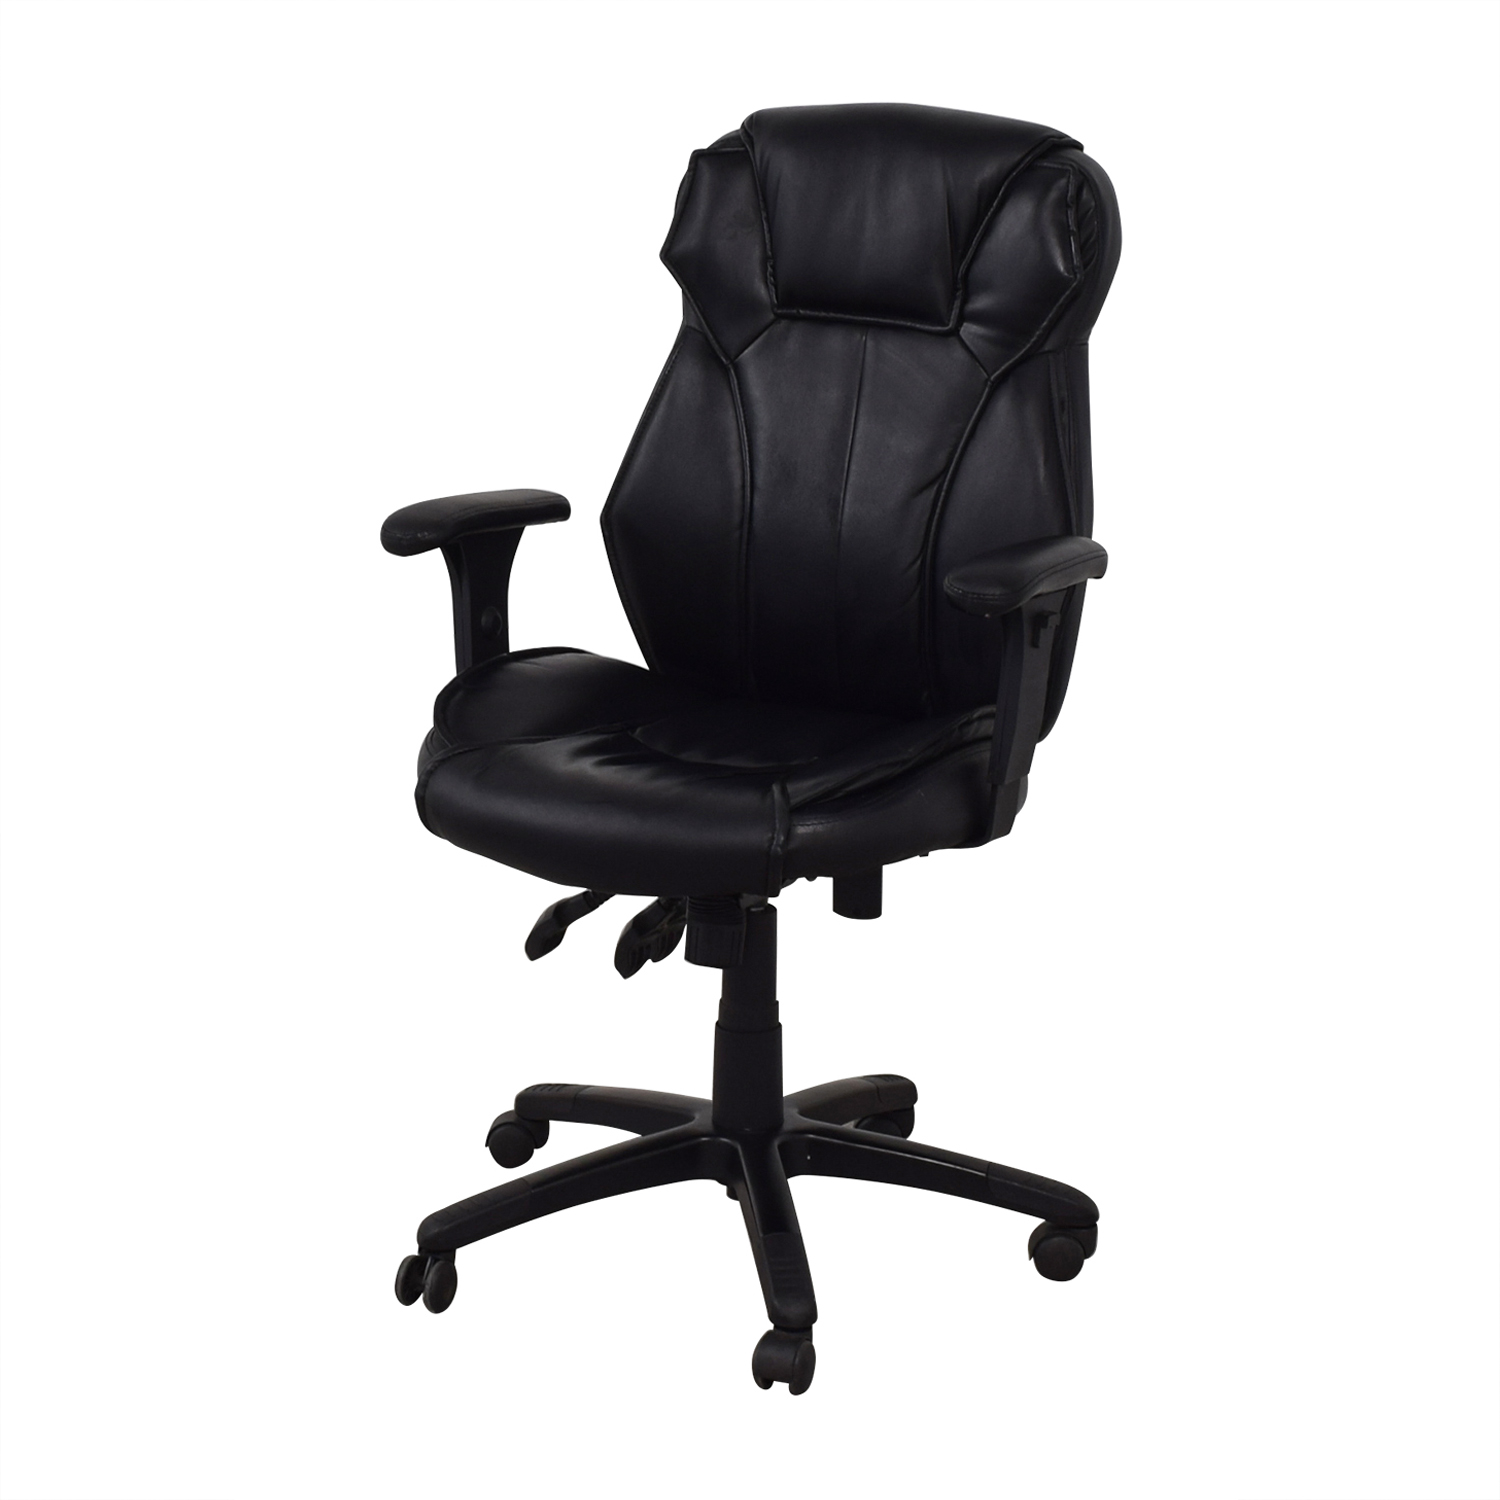 68 Off Black Office Arm Chair Chairs